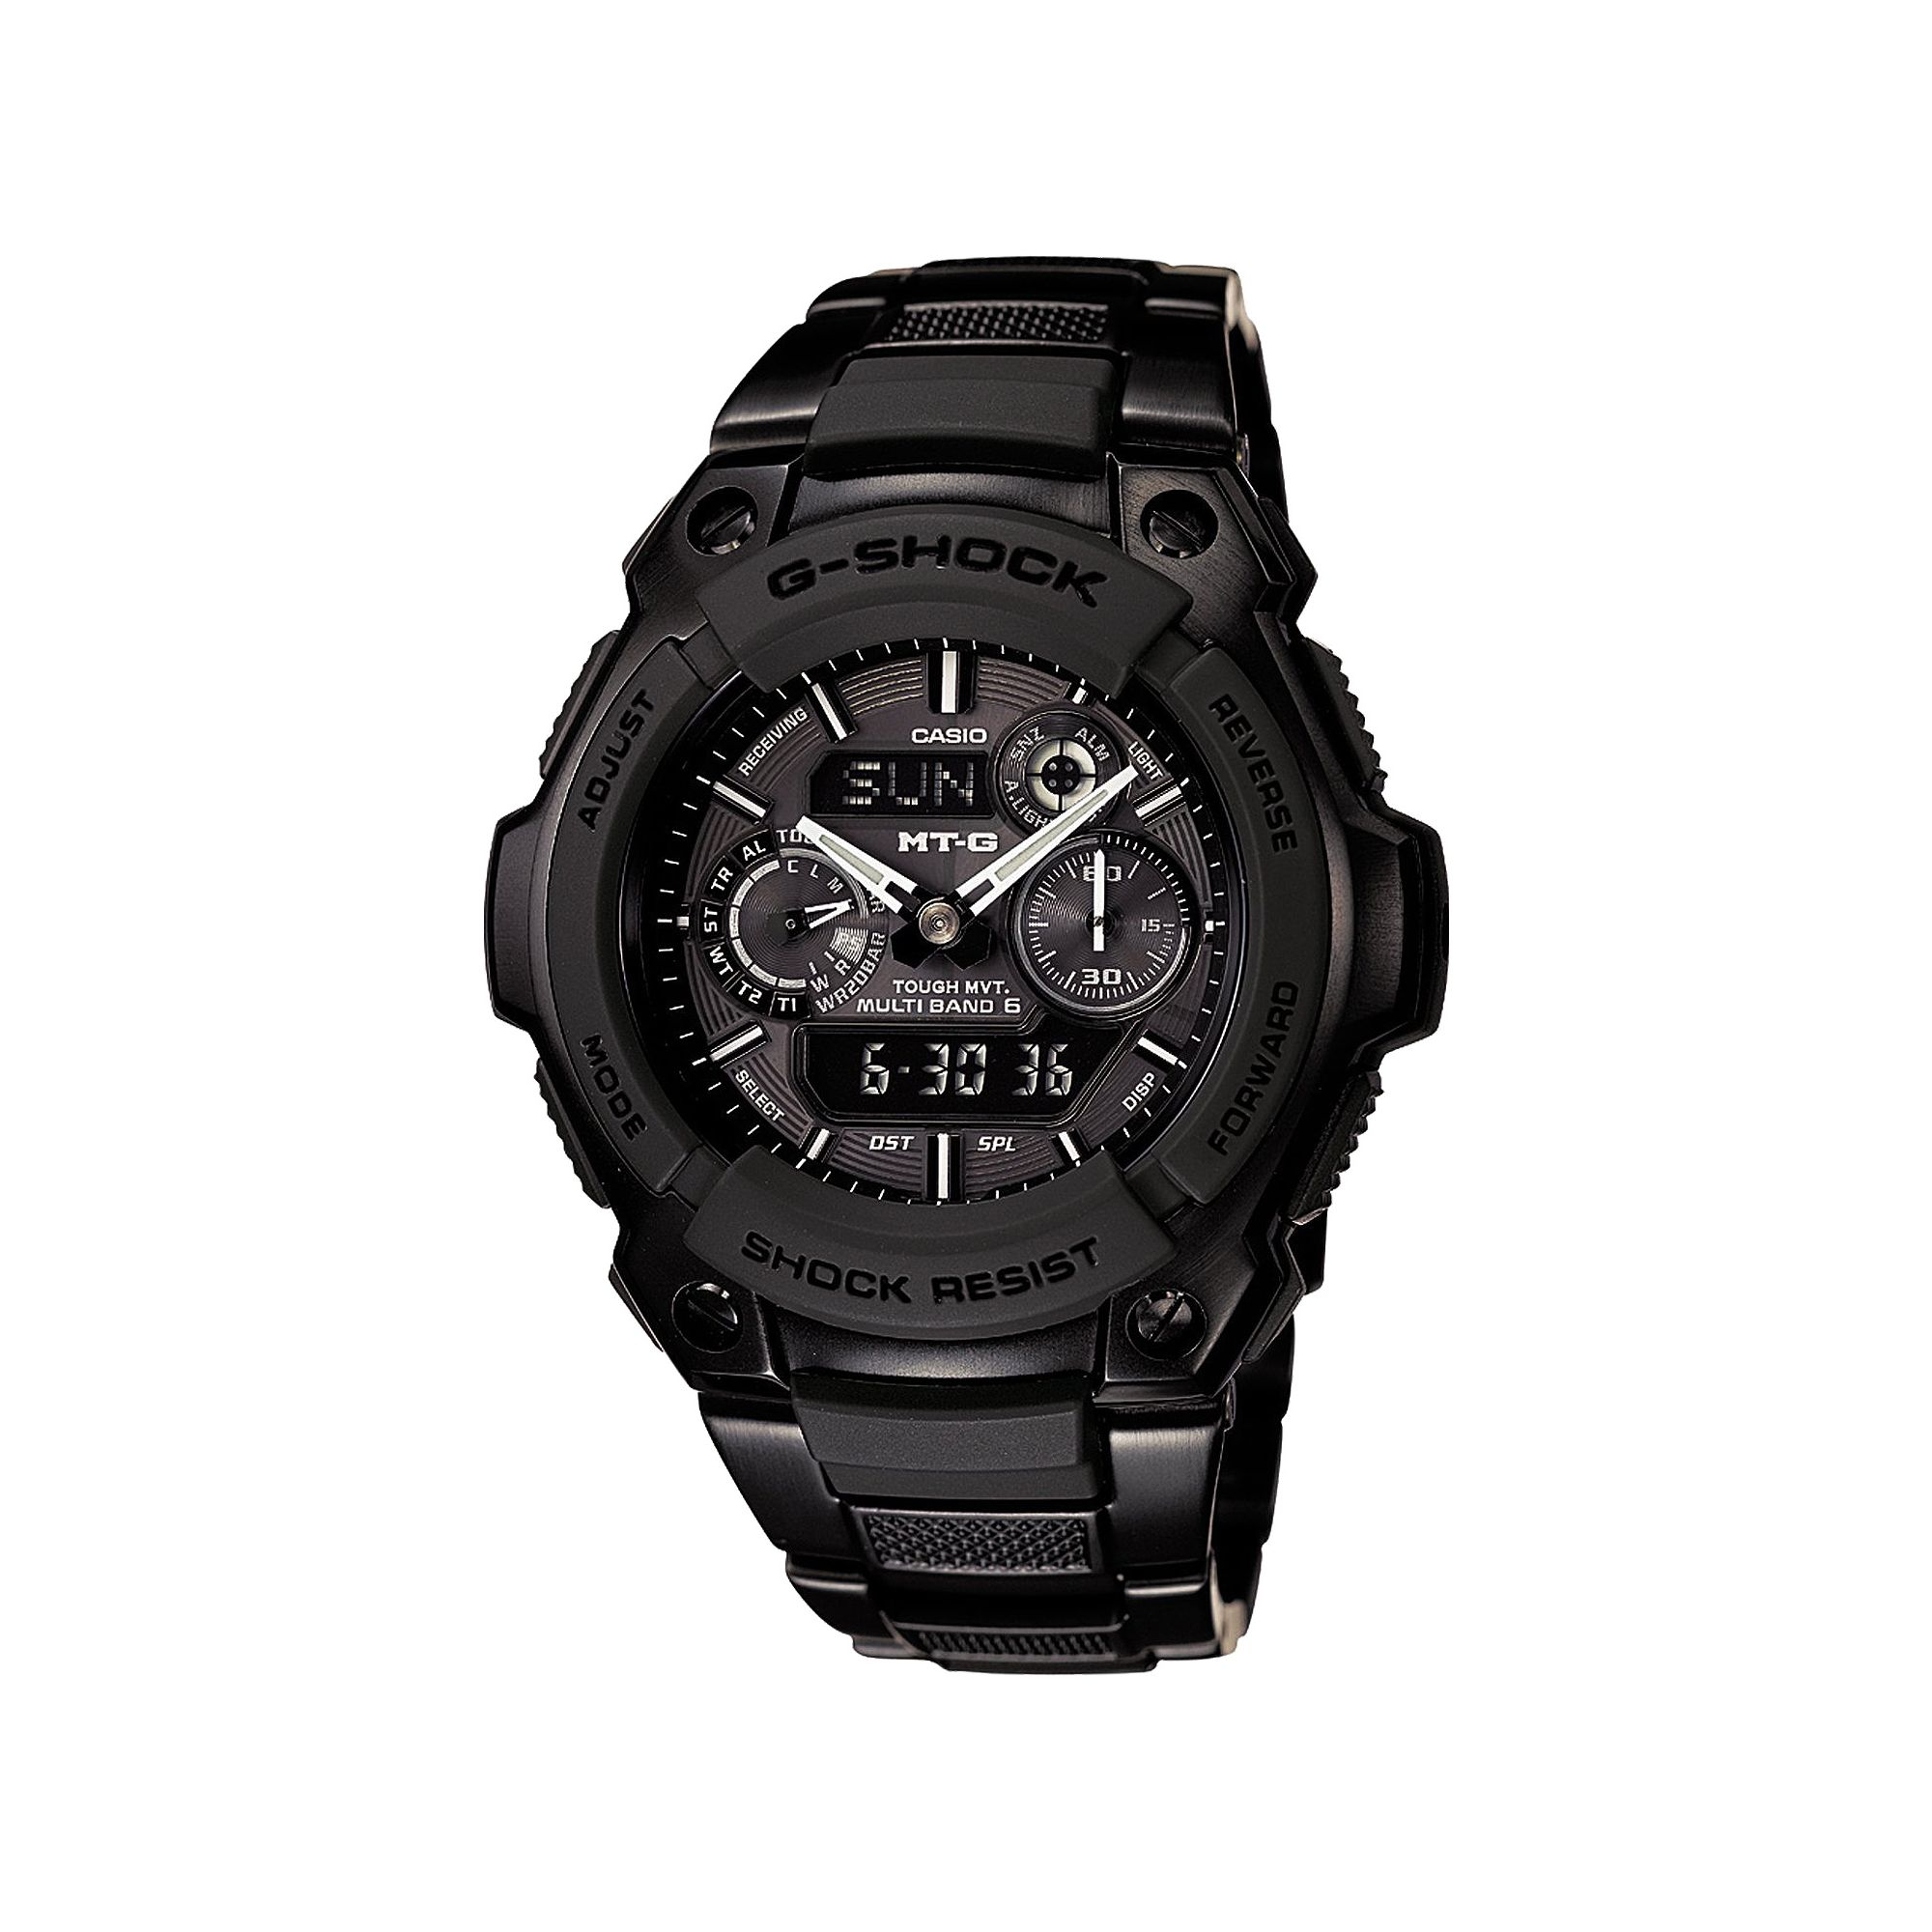 Casio G-Shock Chrono Watch MTG-1500B-1A1EF at Tesco Direct